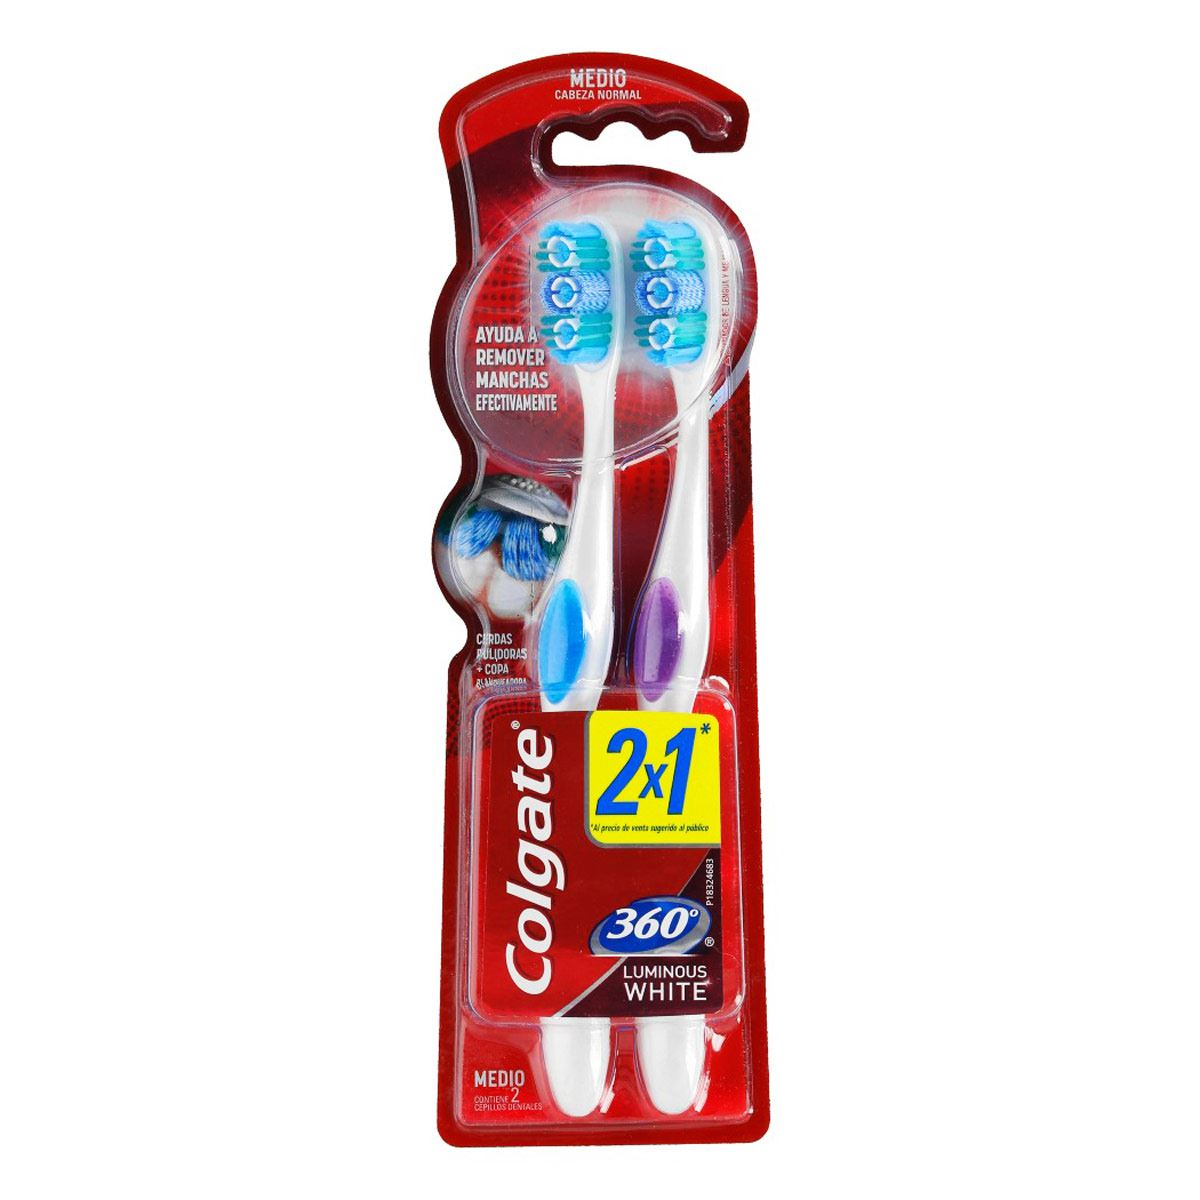 Cepillo Dental  Colgate Luminouswh 2 pz